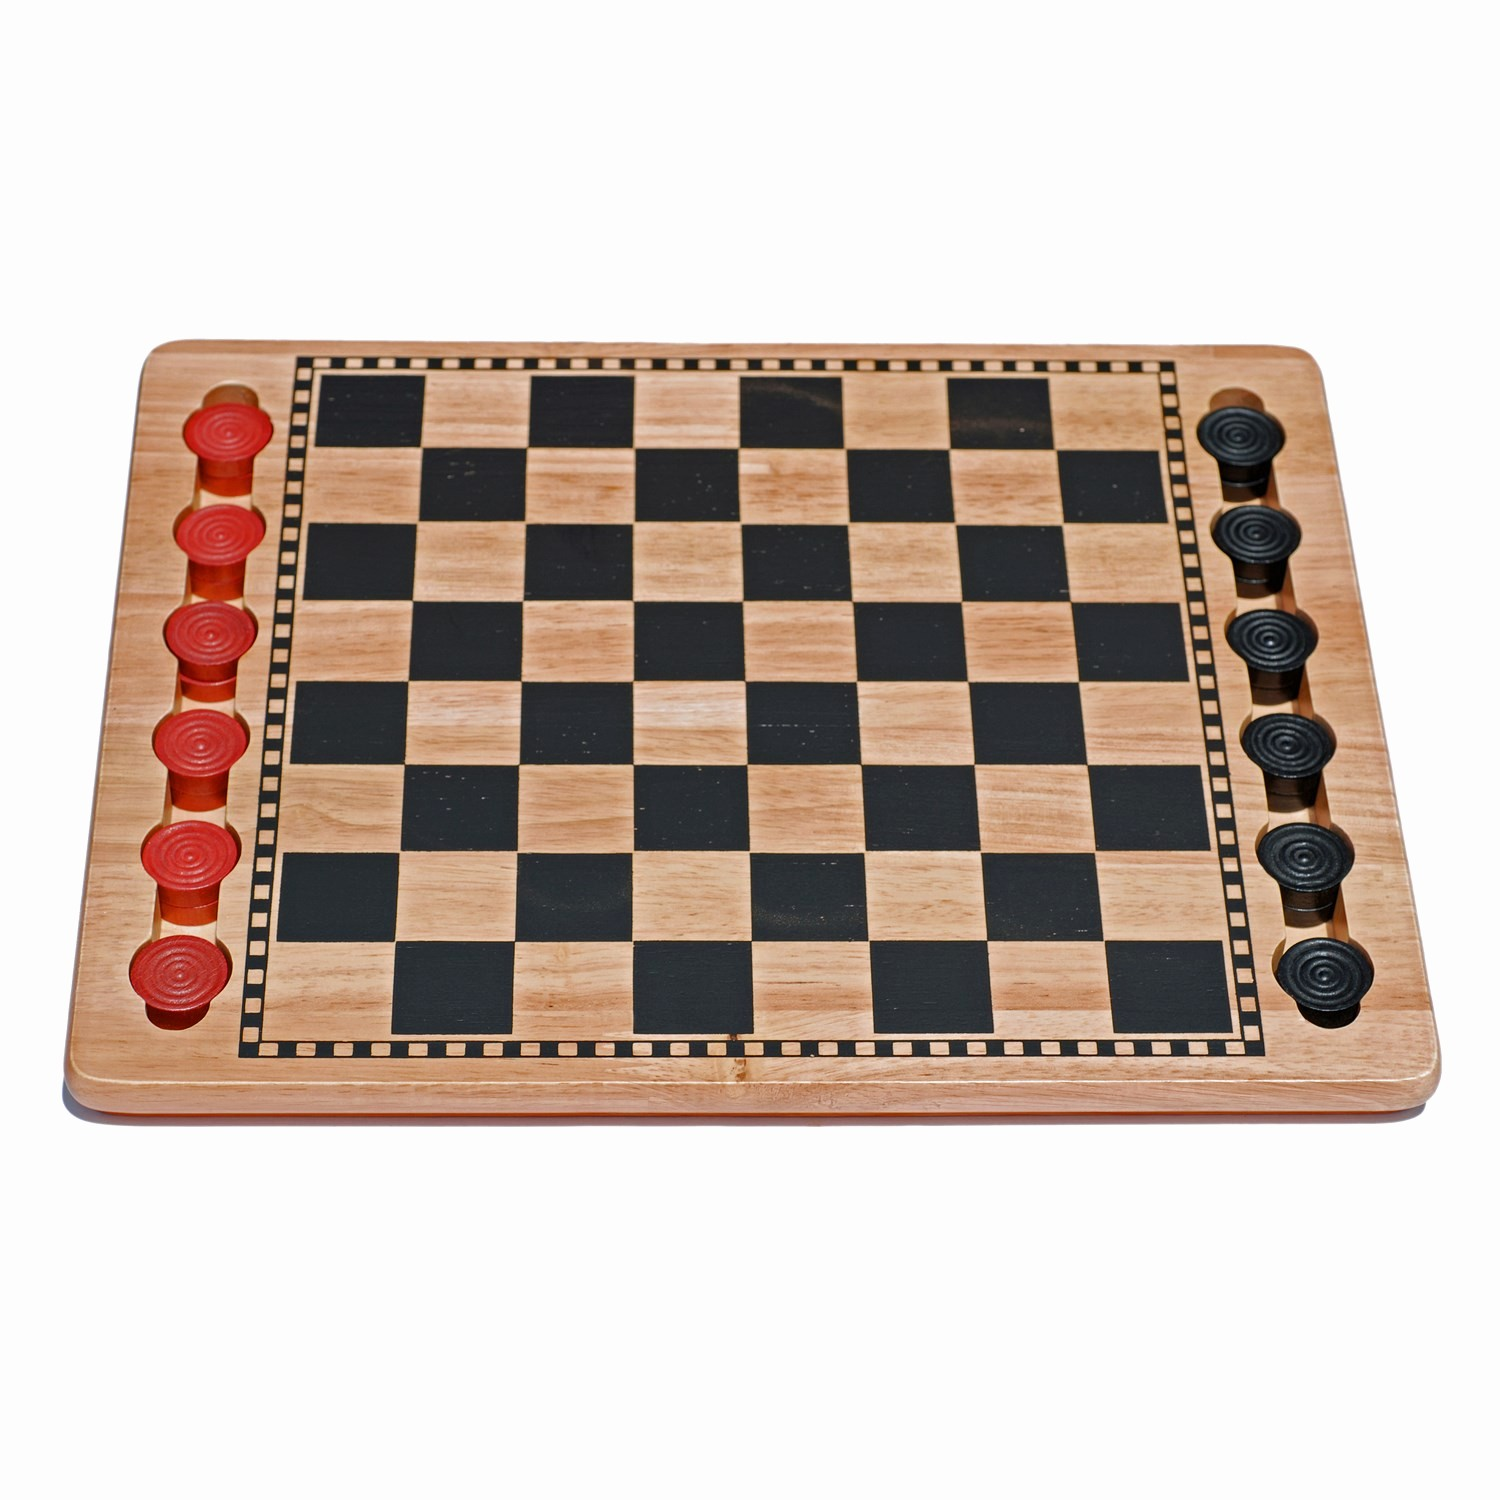 Pictures Of A Checker Board Luxury We Games solid Wood Checkers Set – Red & Black Traditional